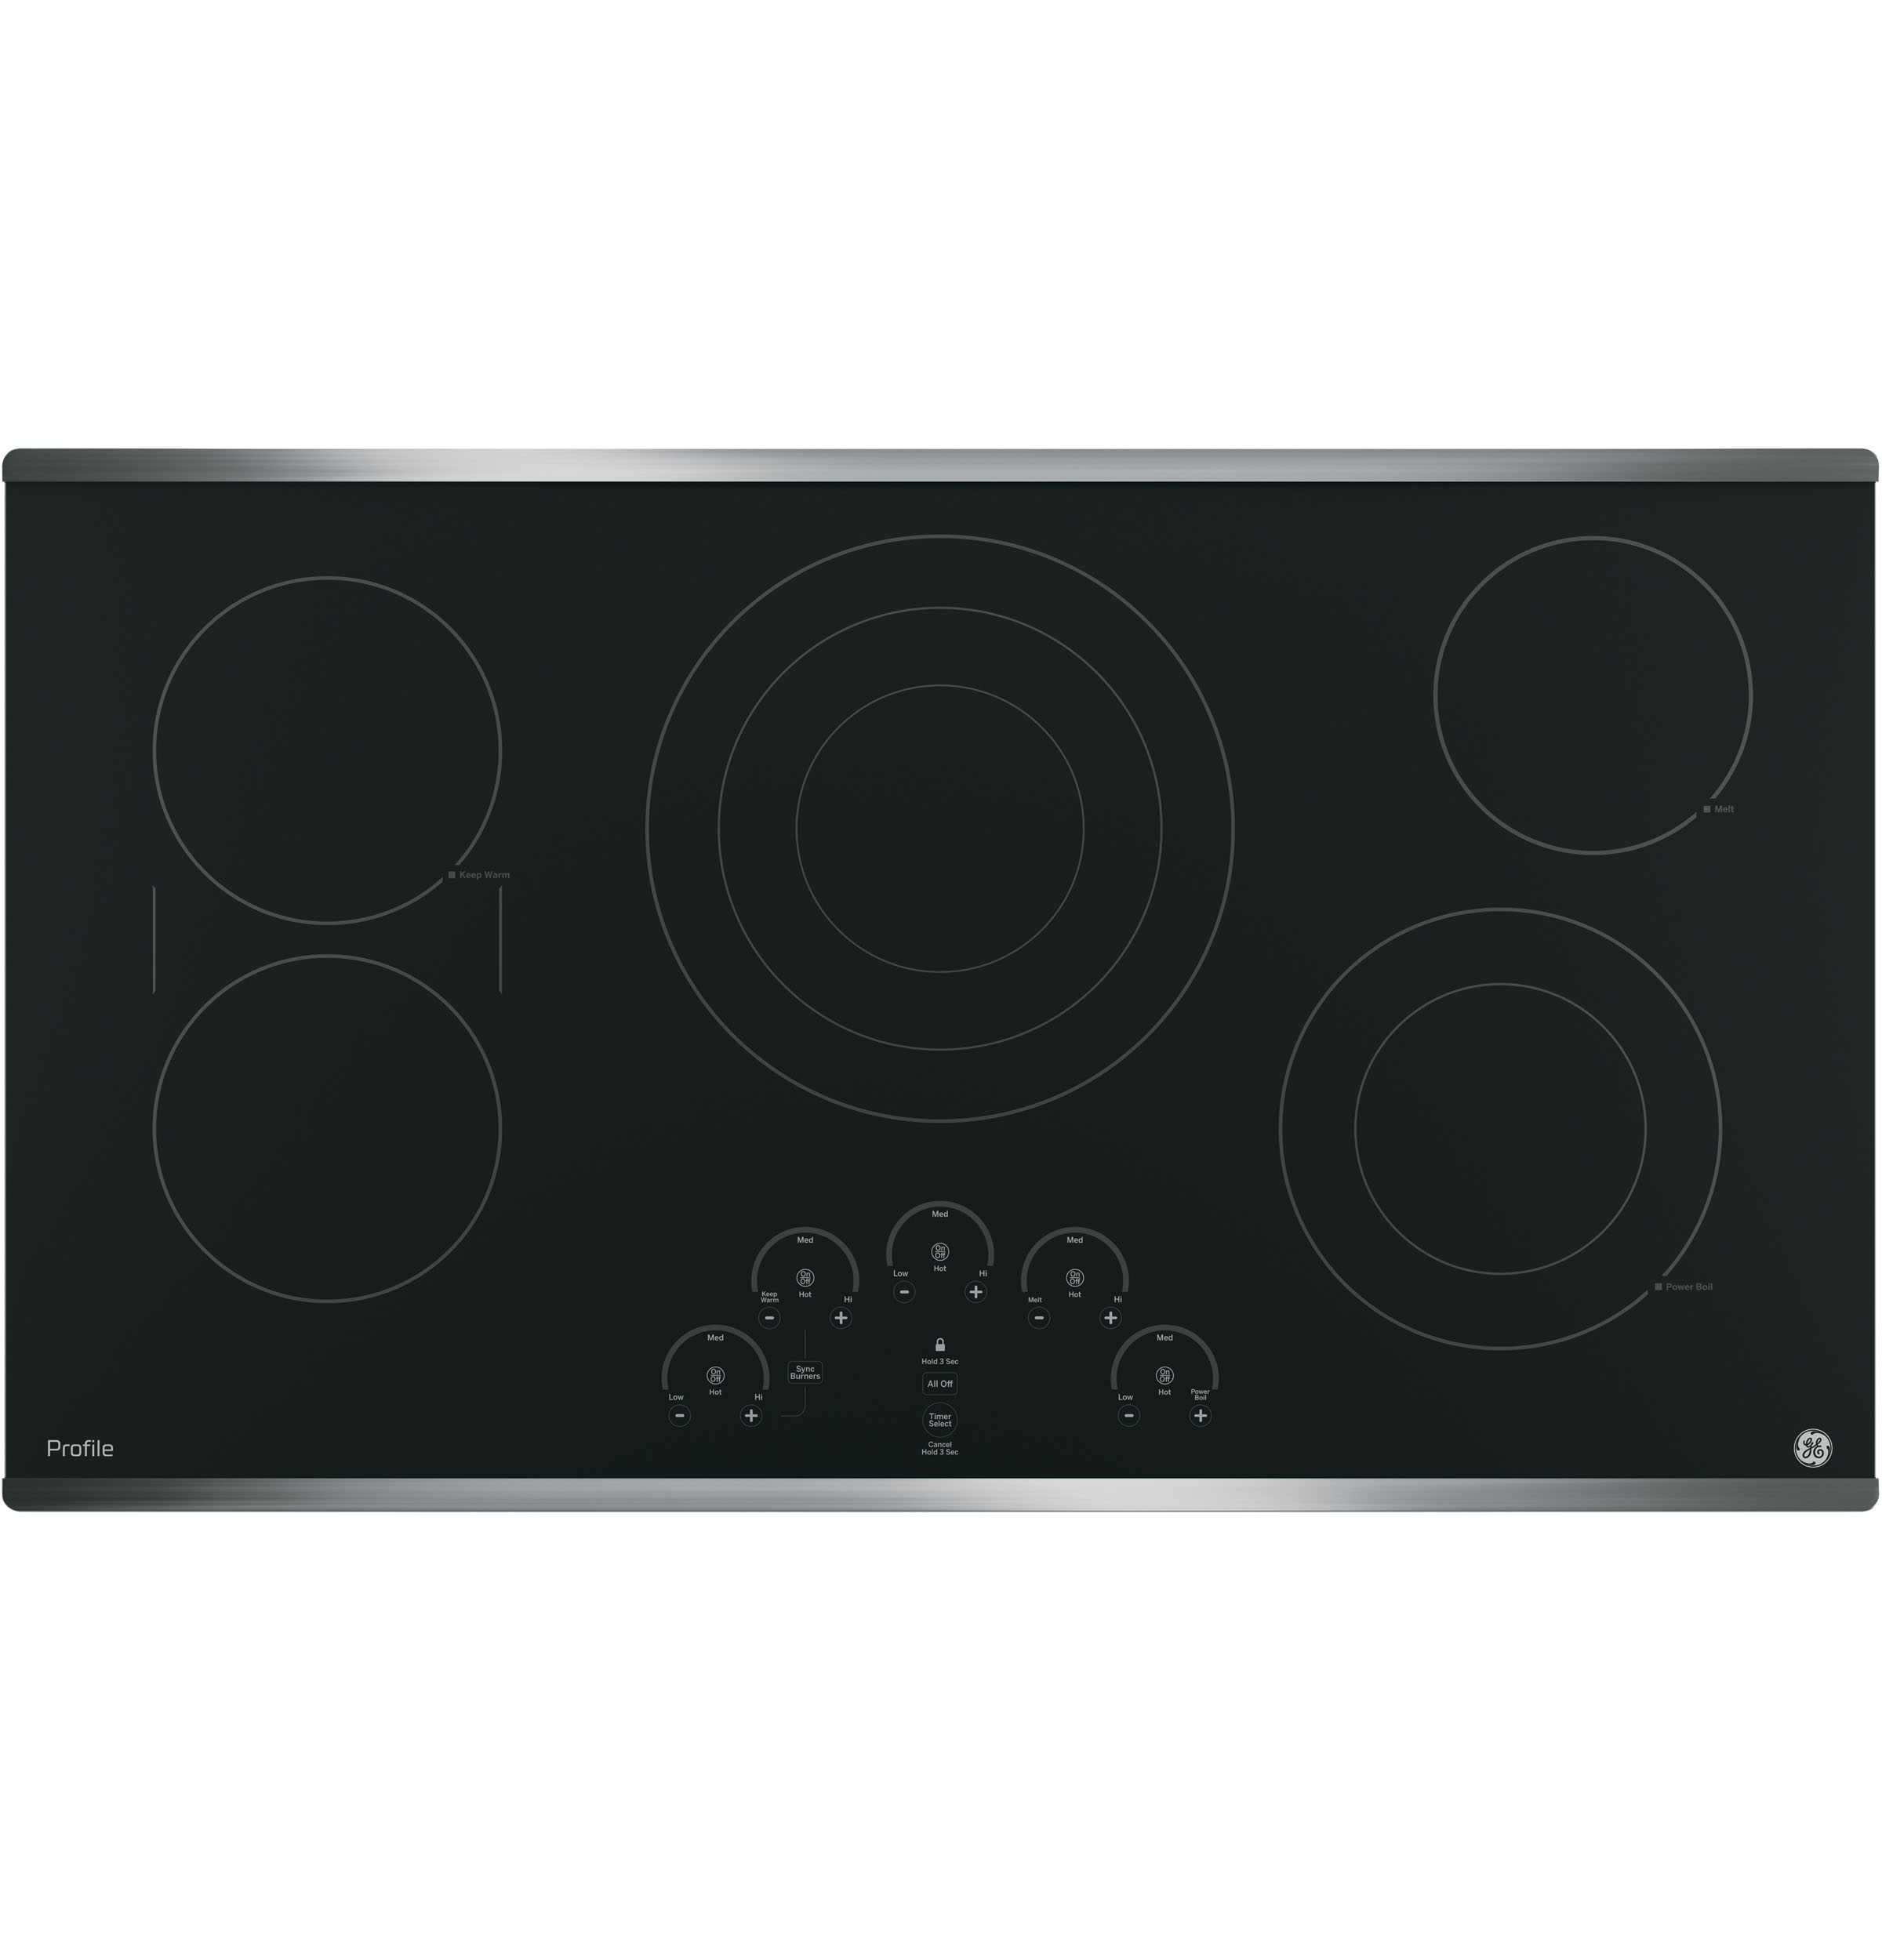 "GE Profile GE Profile™ 36"" Built-In Touch Control Cooktop"